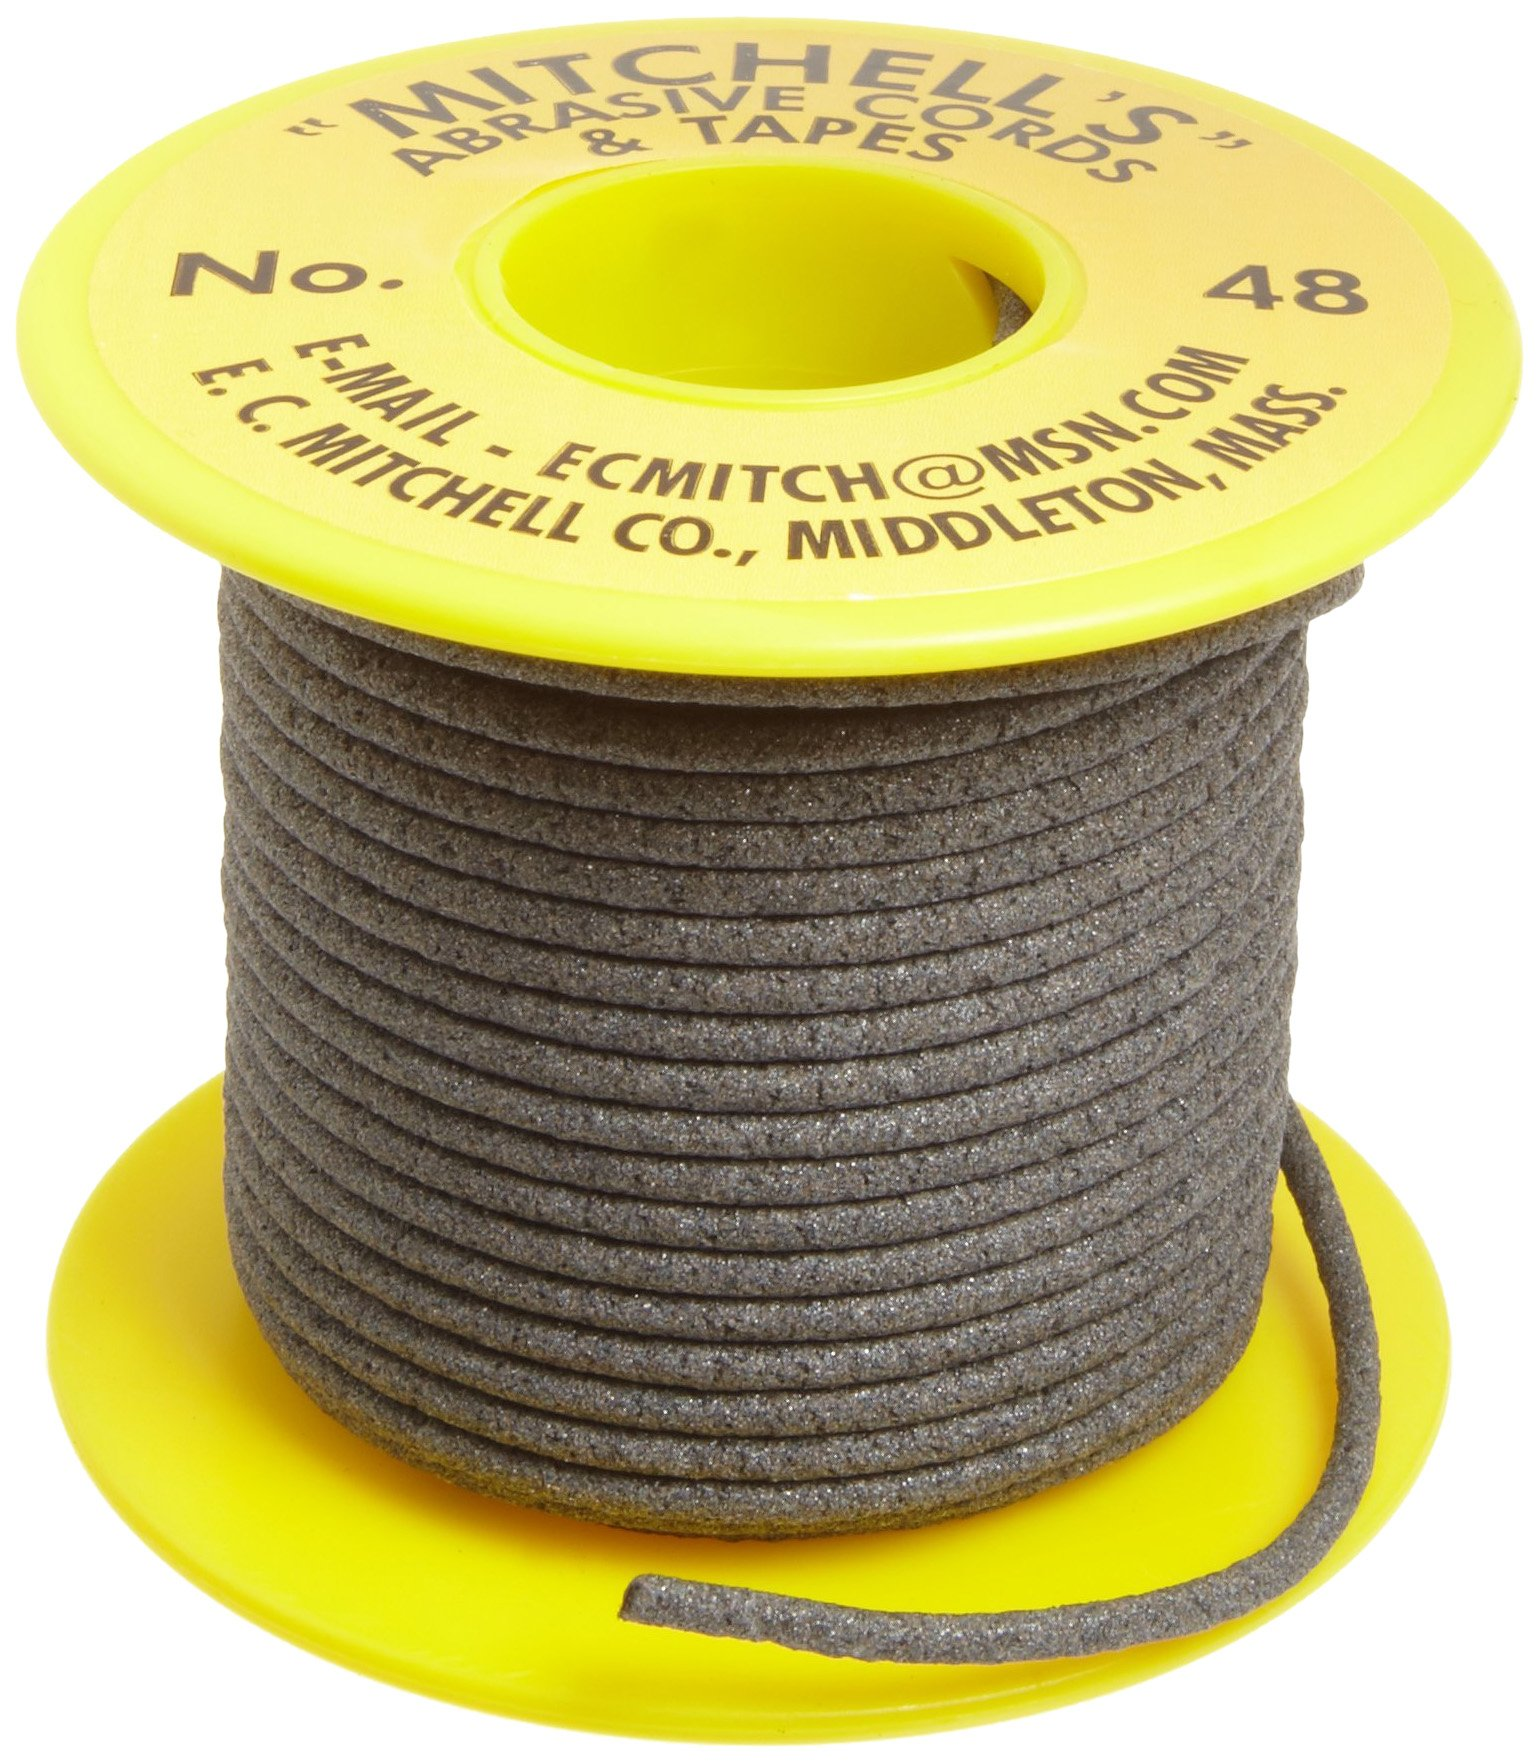 Mitchell Abrasives 48 Round Abrasive Cord, Aluminum Oxide 150 Grit .093'' Diameter x 25 Feet by Mitchell Abrasives